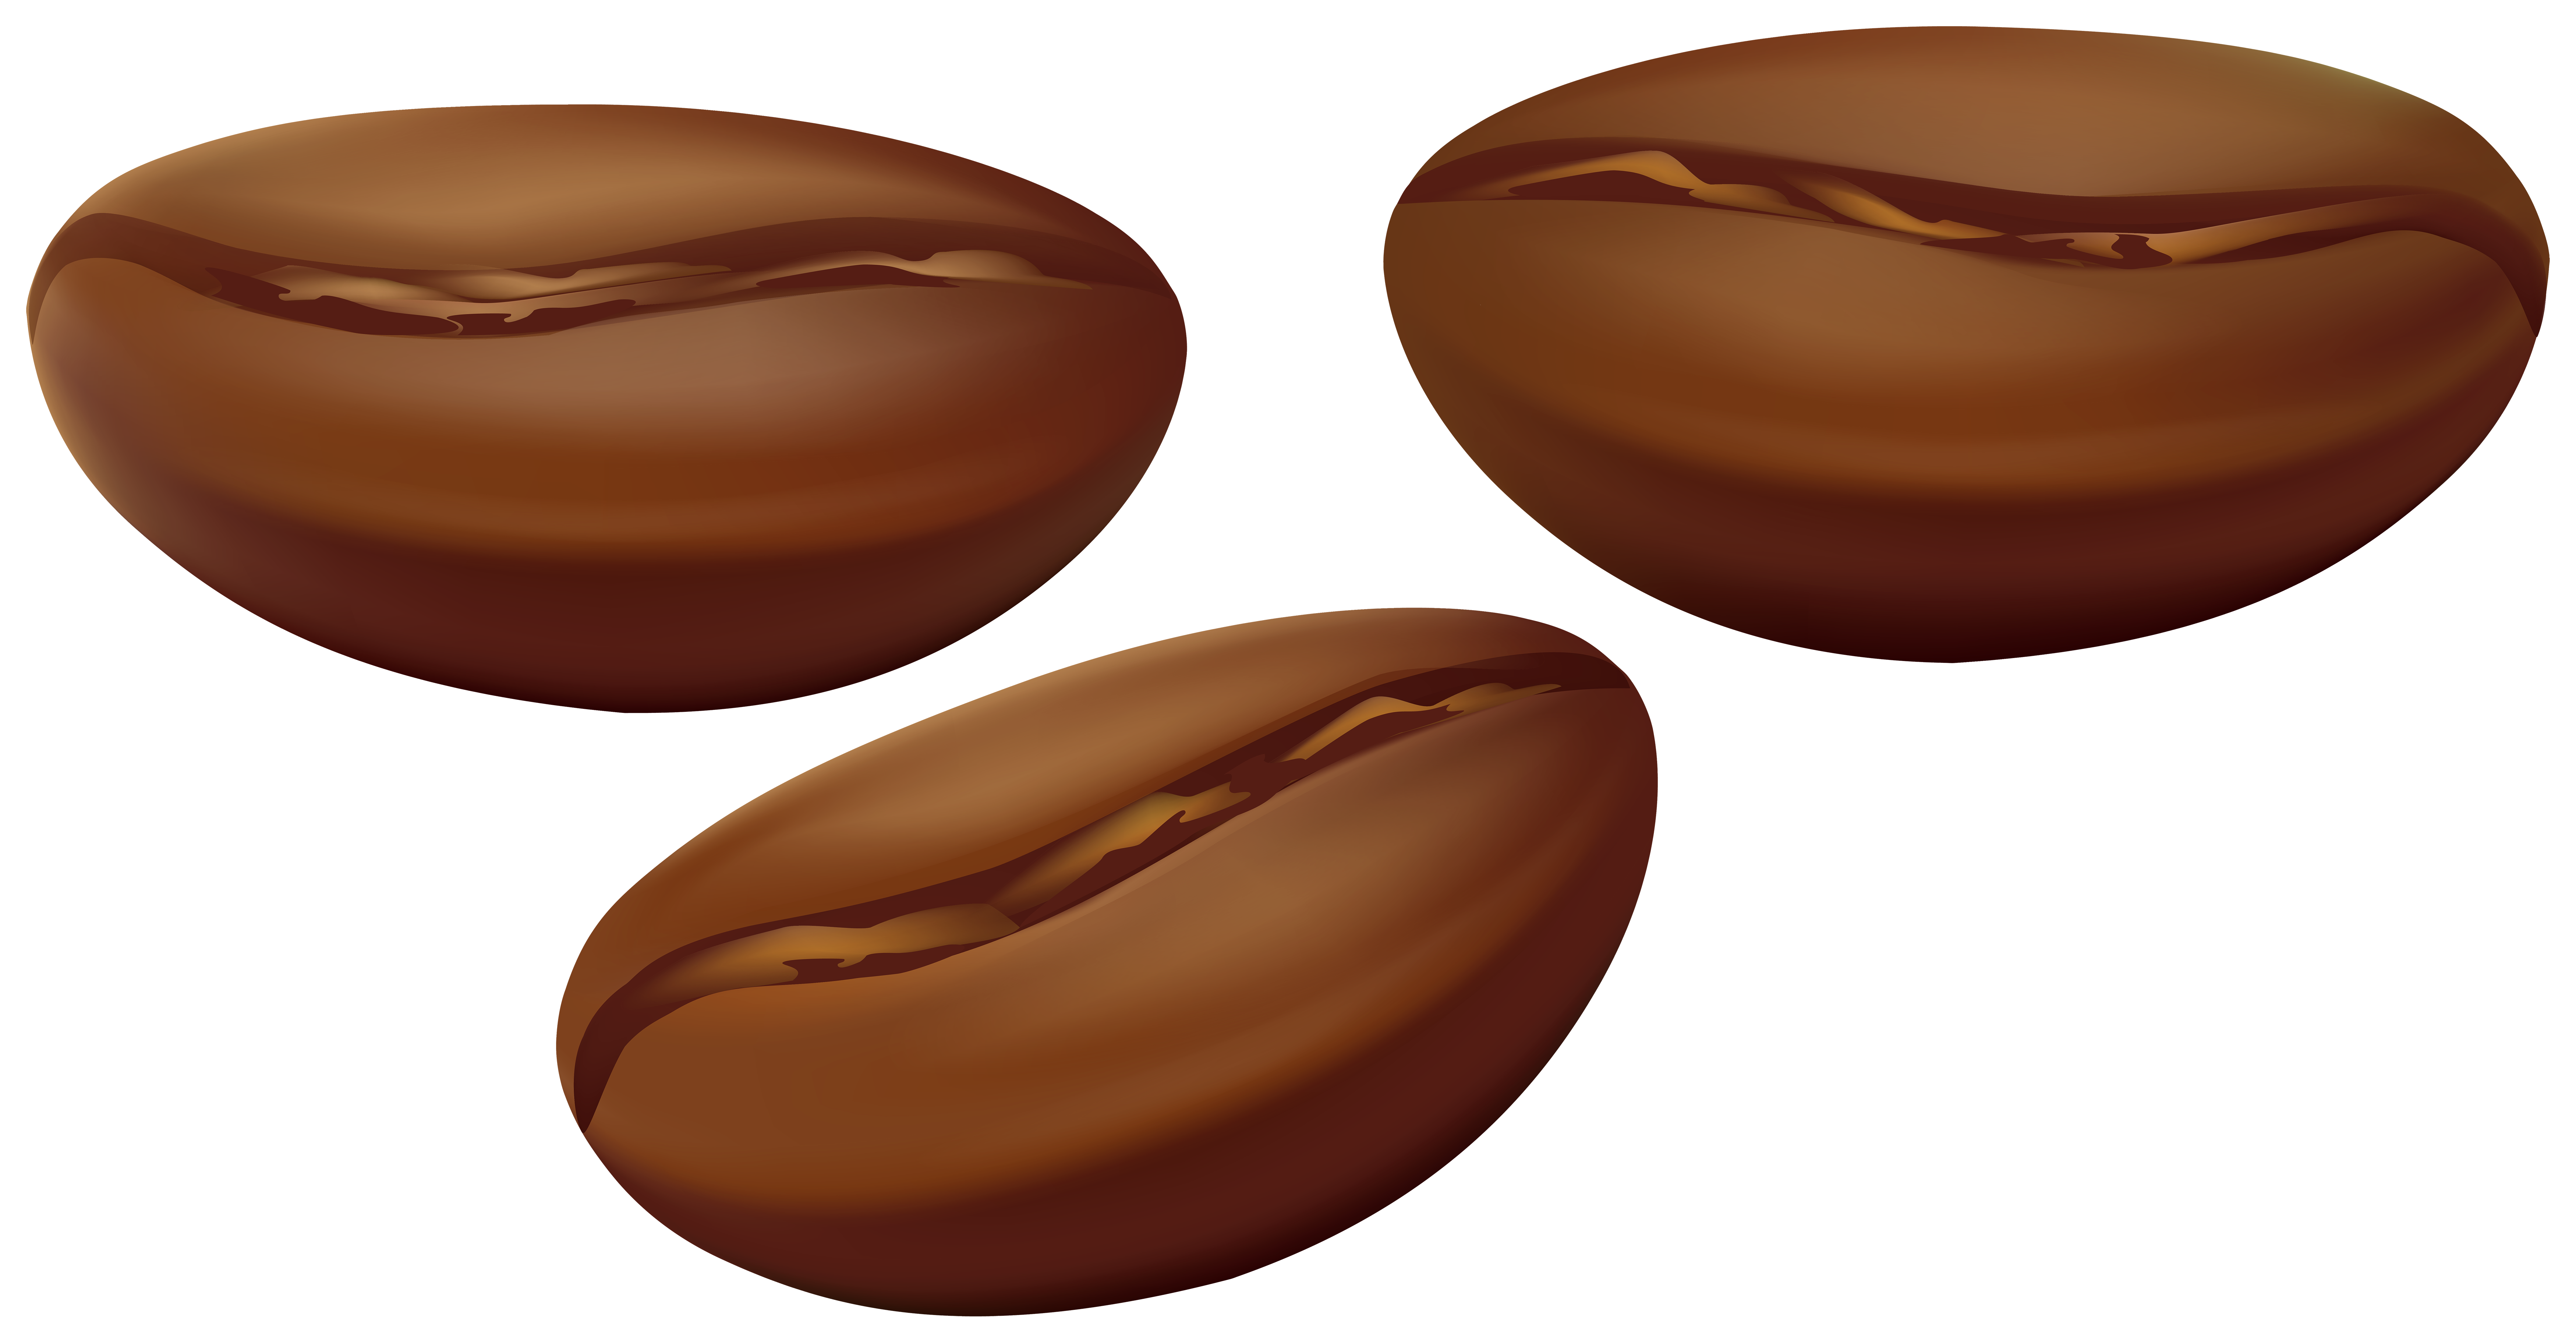 Peanuts clipart transparent background. Coffee beans png clip